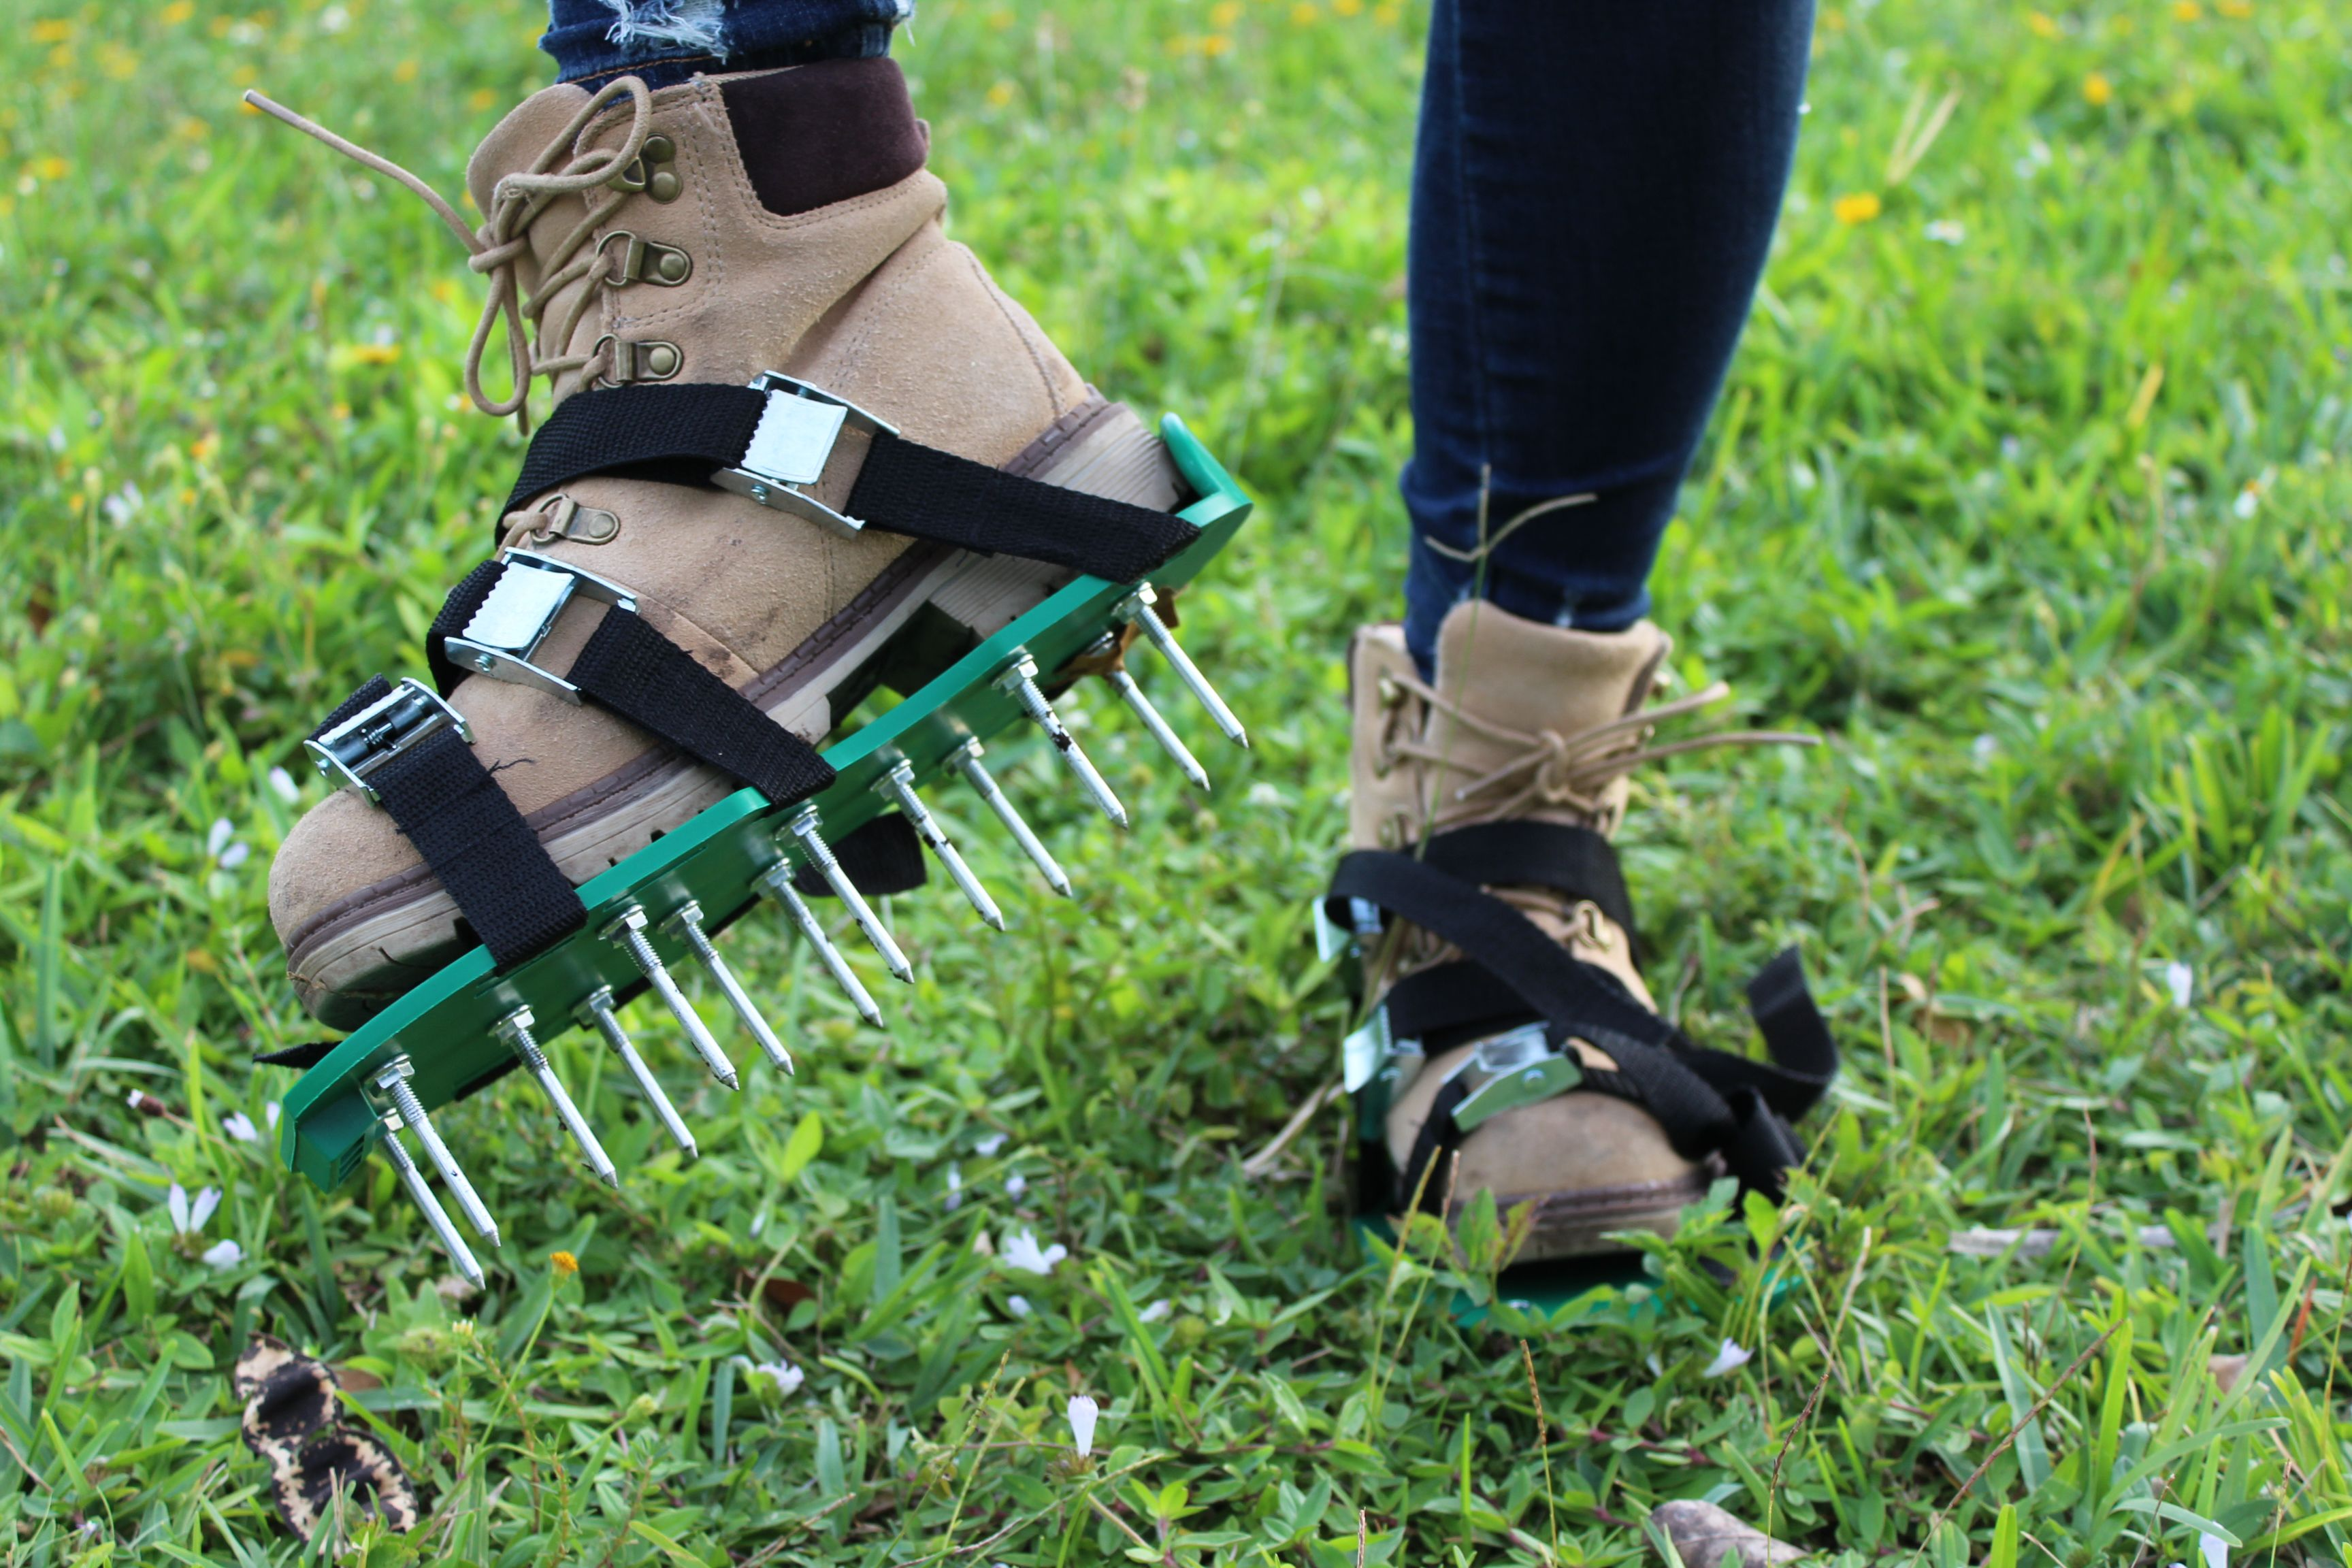 Our Best Product Lawn Aerator Shoes You Can Get Them From The Link Aerate Lawn Aerator Shoes